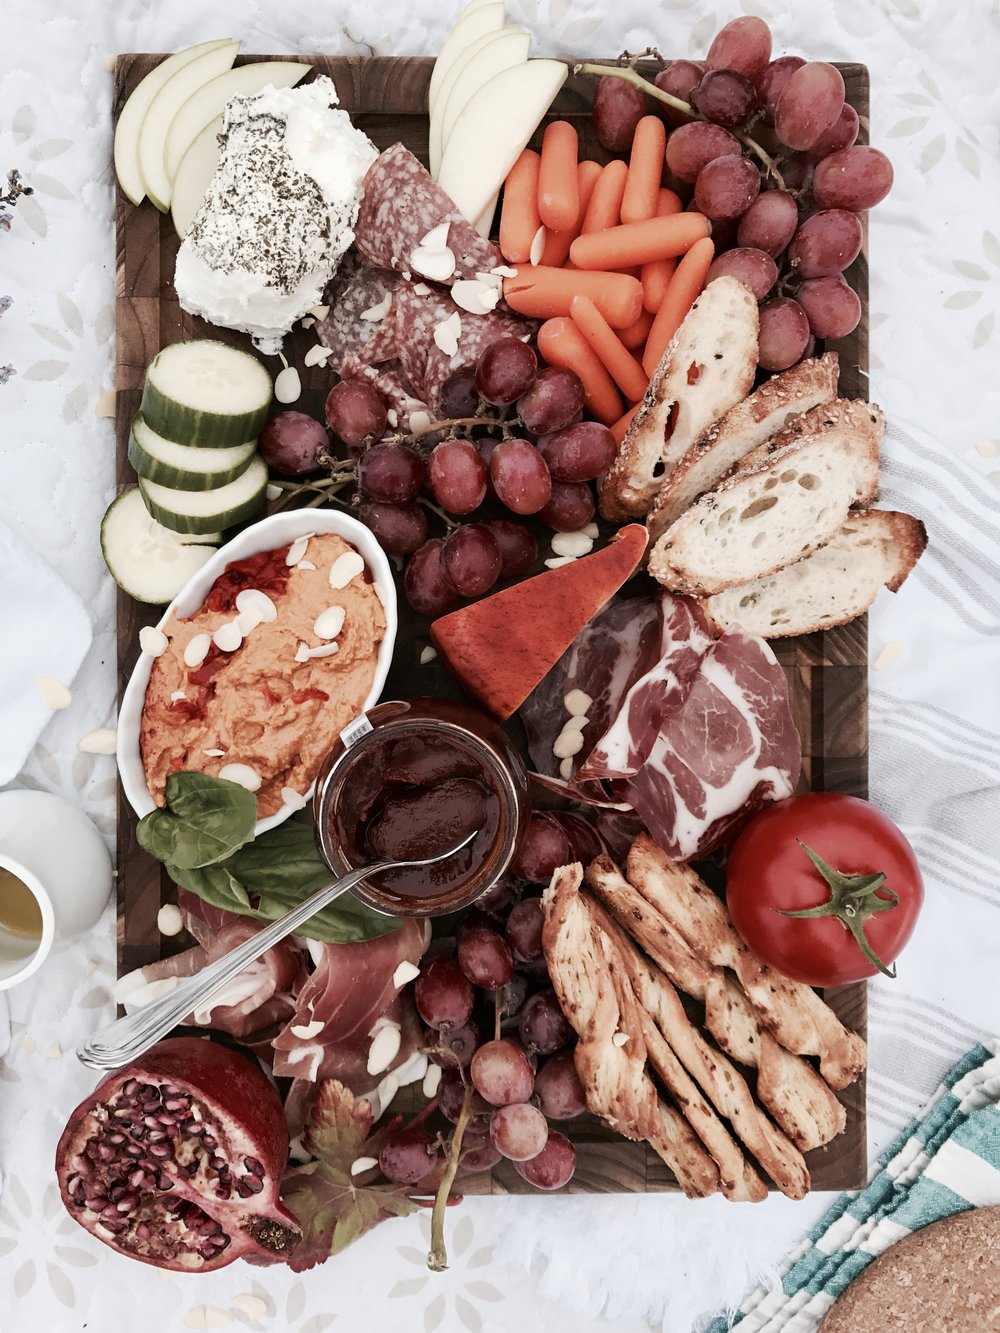 We included: - - Roasted red pepper hummus- Cucumber- Carrots- Proscuitto- Genoa salami- Coppa di parma- Red grapes- Smoked cheddar- Herbed goats cheese- Toasted baguette- Cracker sticks- Greek tomato paste